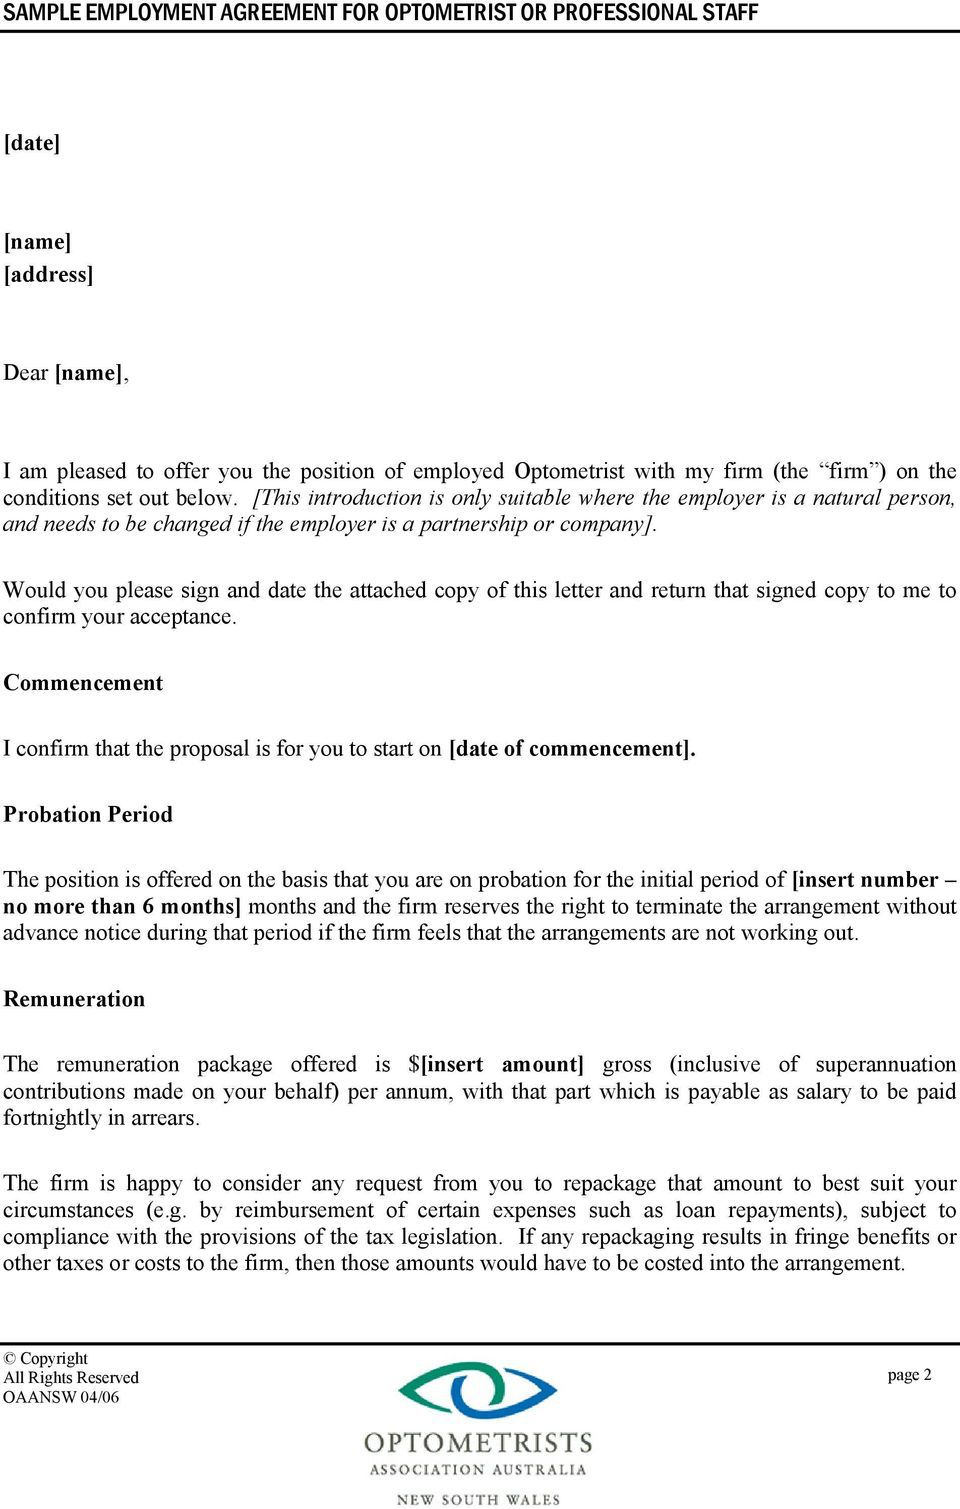 006 Fantastic Free Casual Employment Contract Template Australia Picture Full